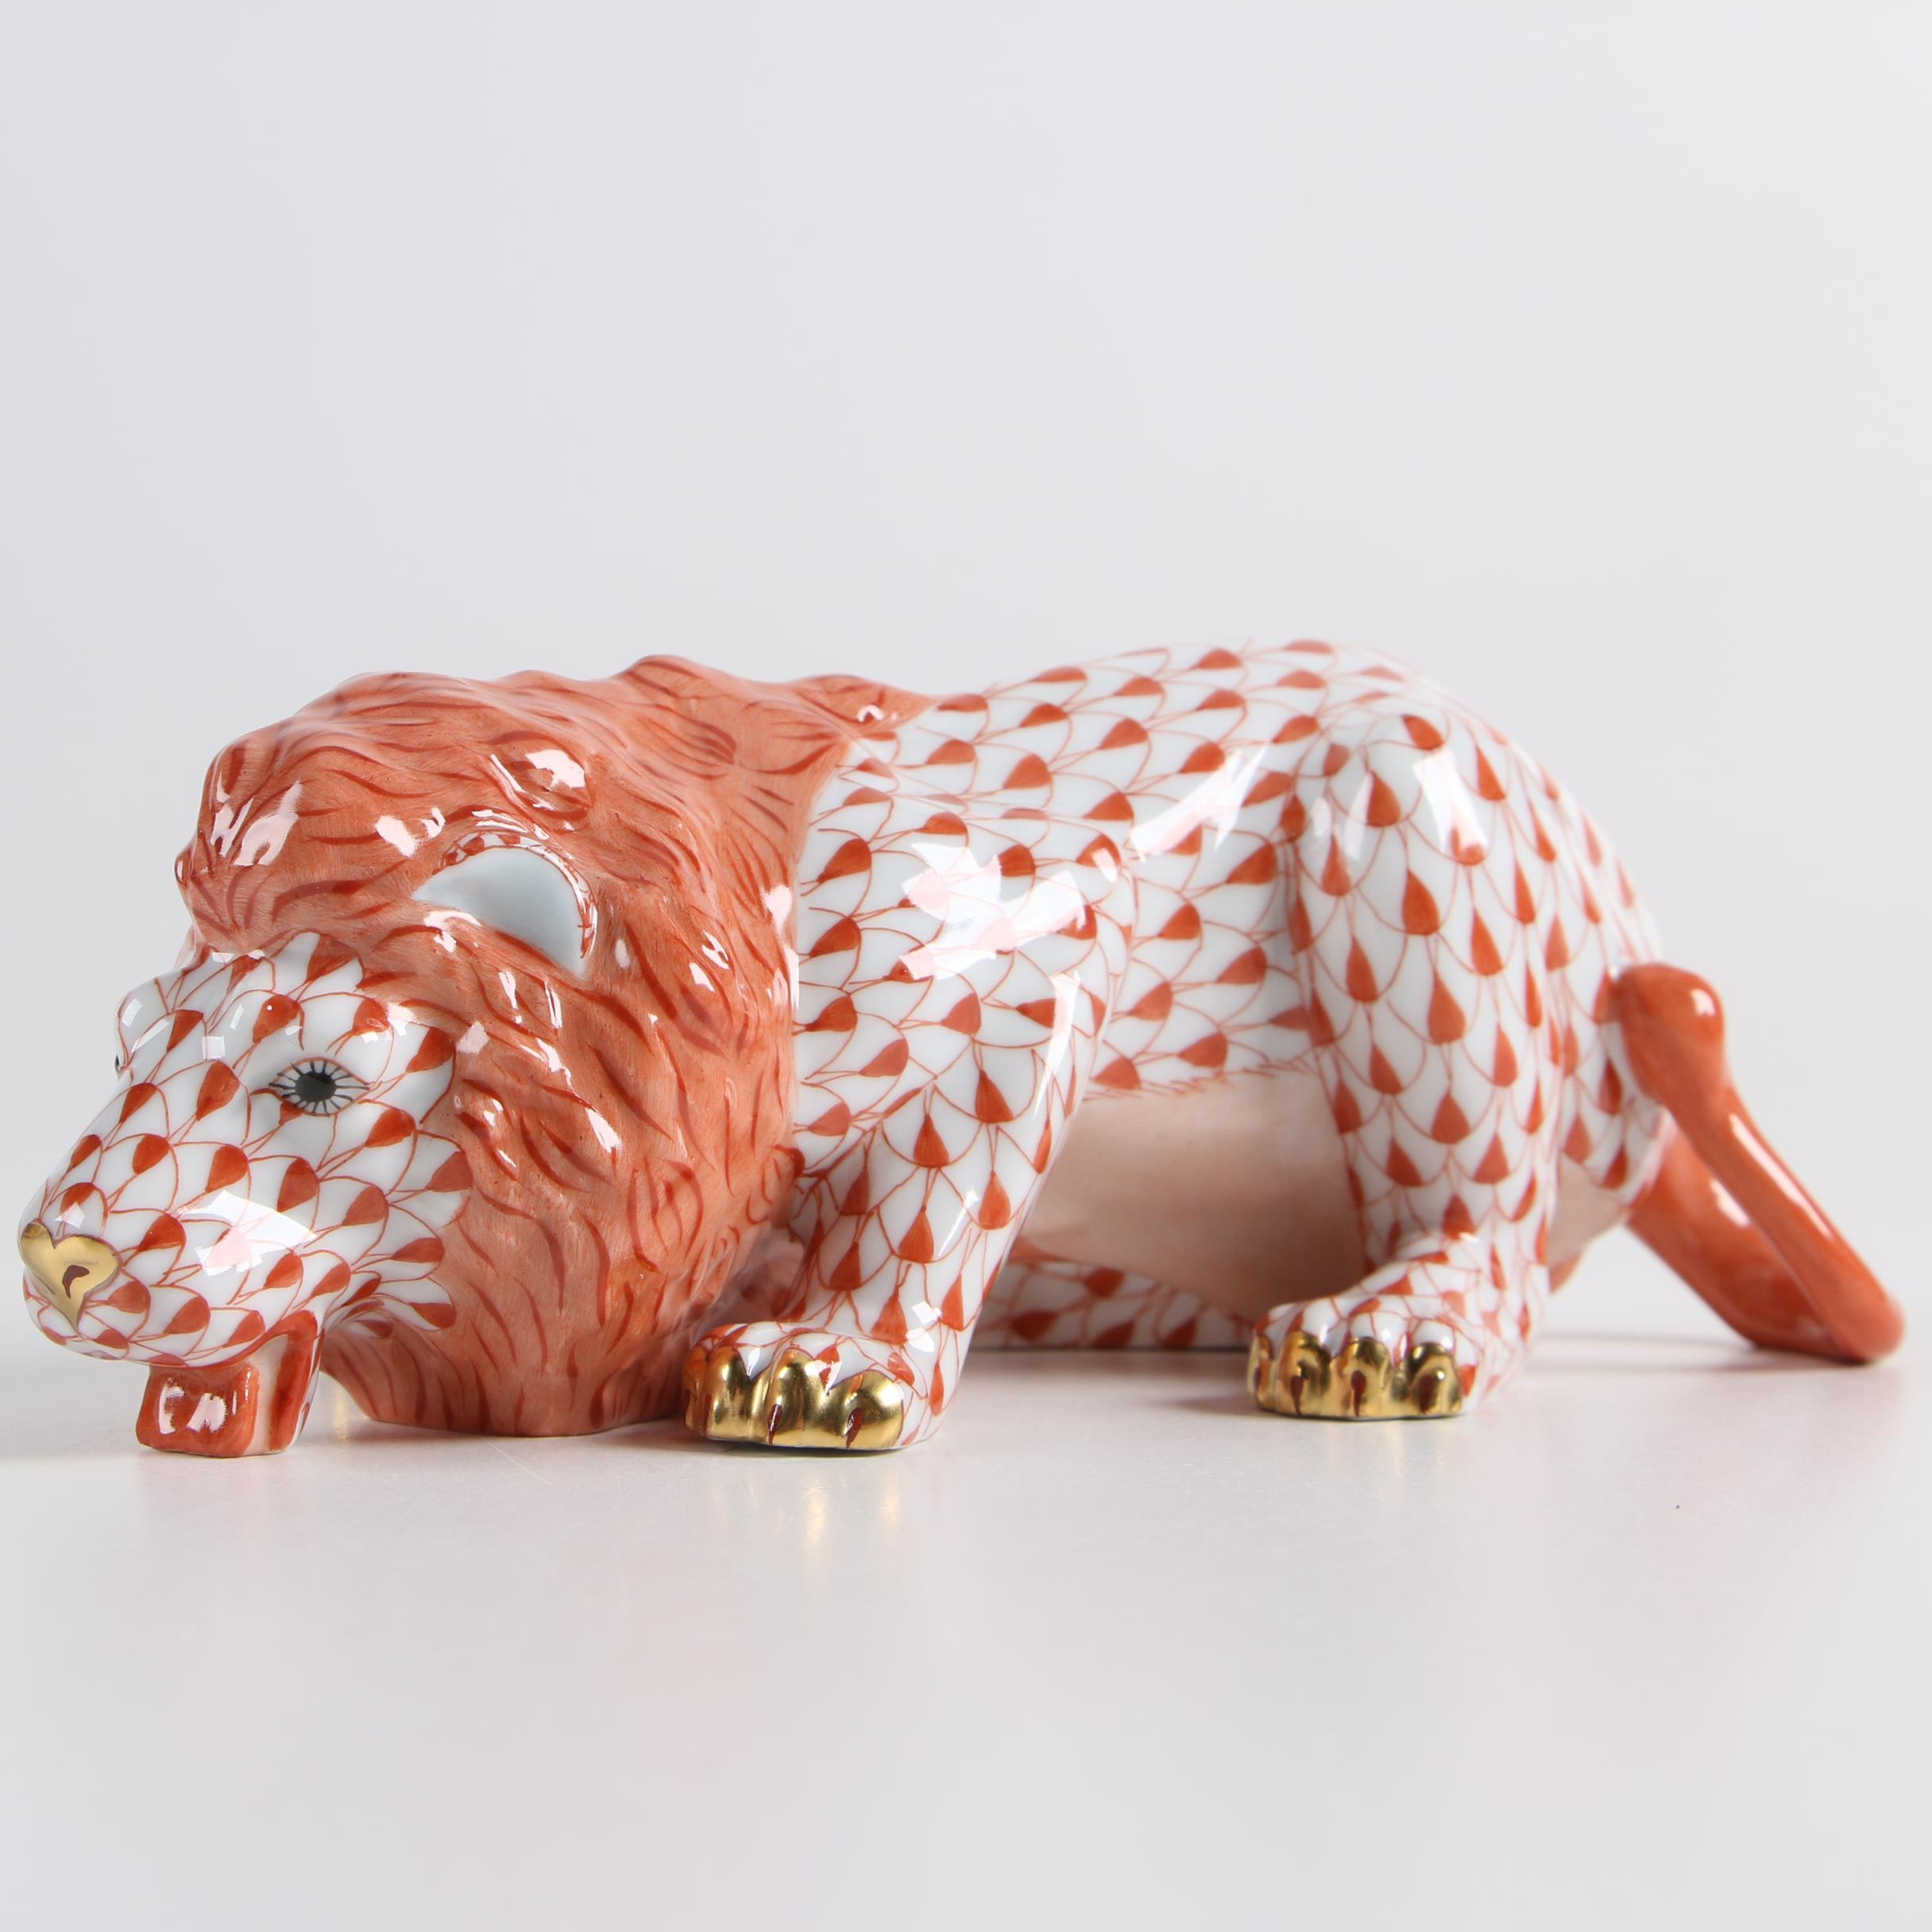 """Herend Hungary """"Lion"""" Hand-Painted Porcelain Figurine"""